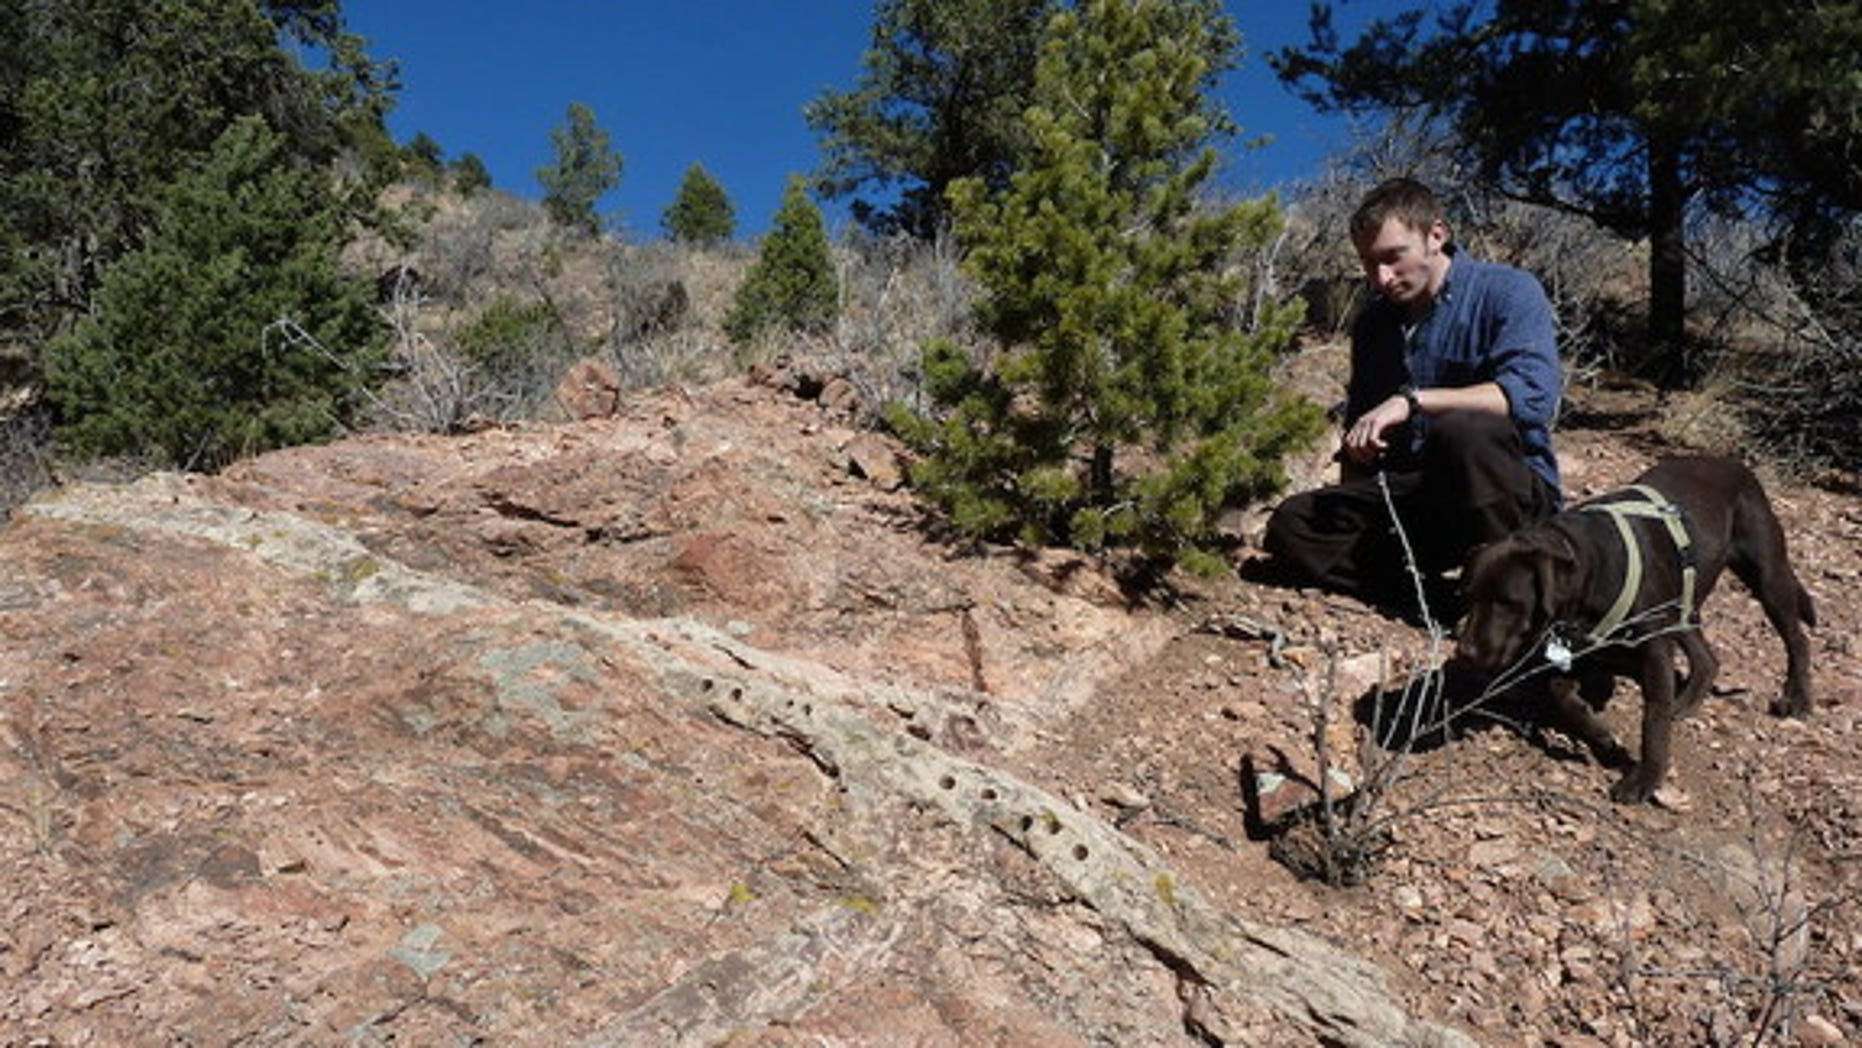 The age and explanation for the formation of the pink-colored Tava sandstone in Colorado's Rocky Mountains have long puzzled geologists.